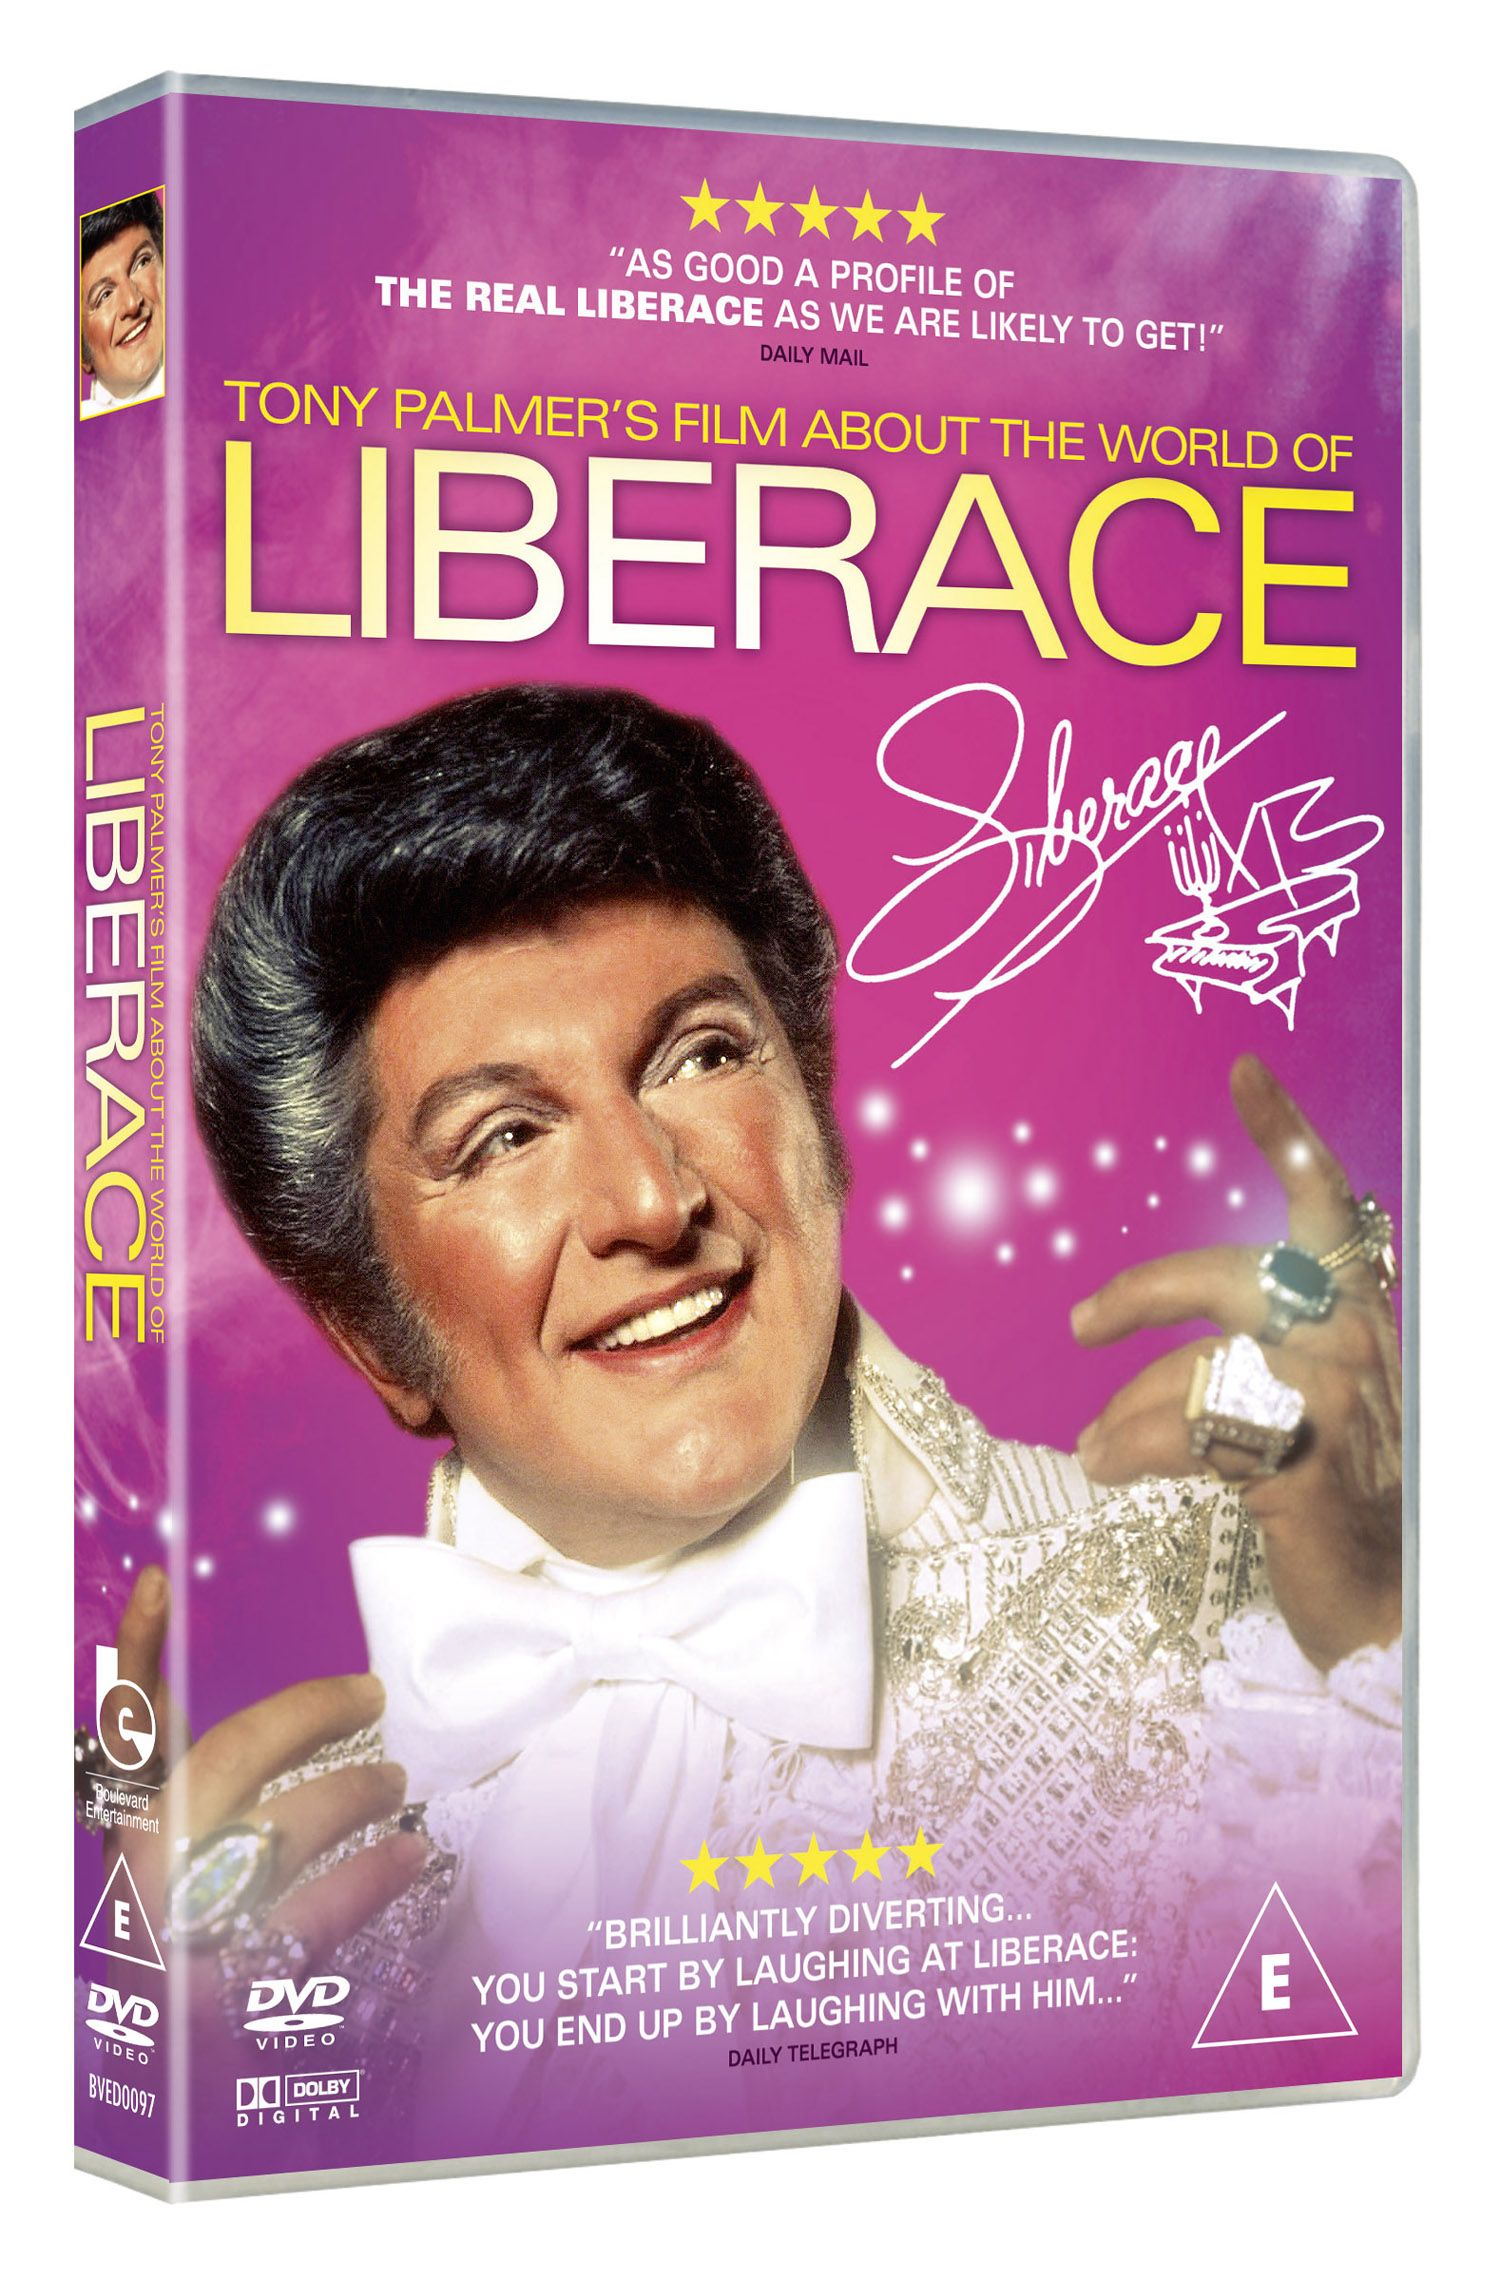 The World Of Liberace comes to DVD 29 July 2013.